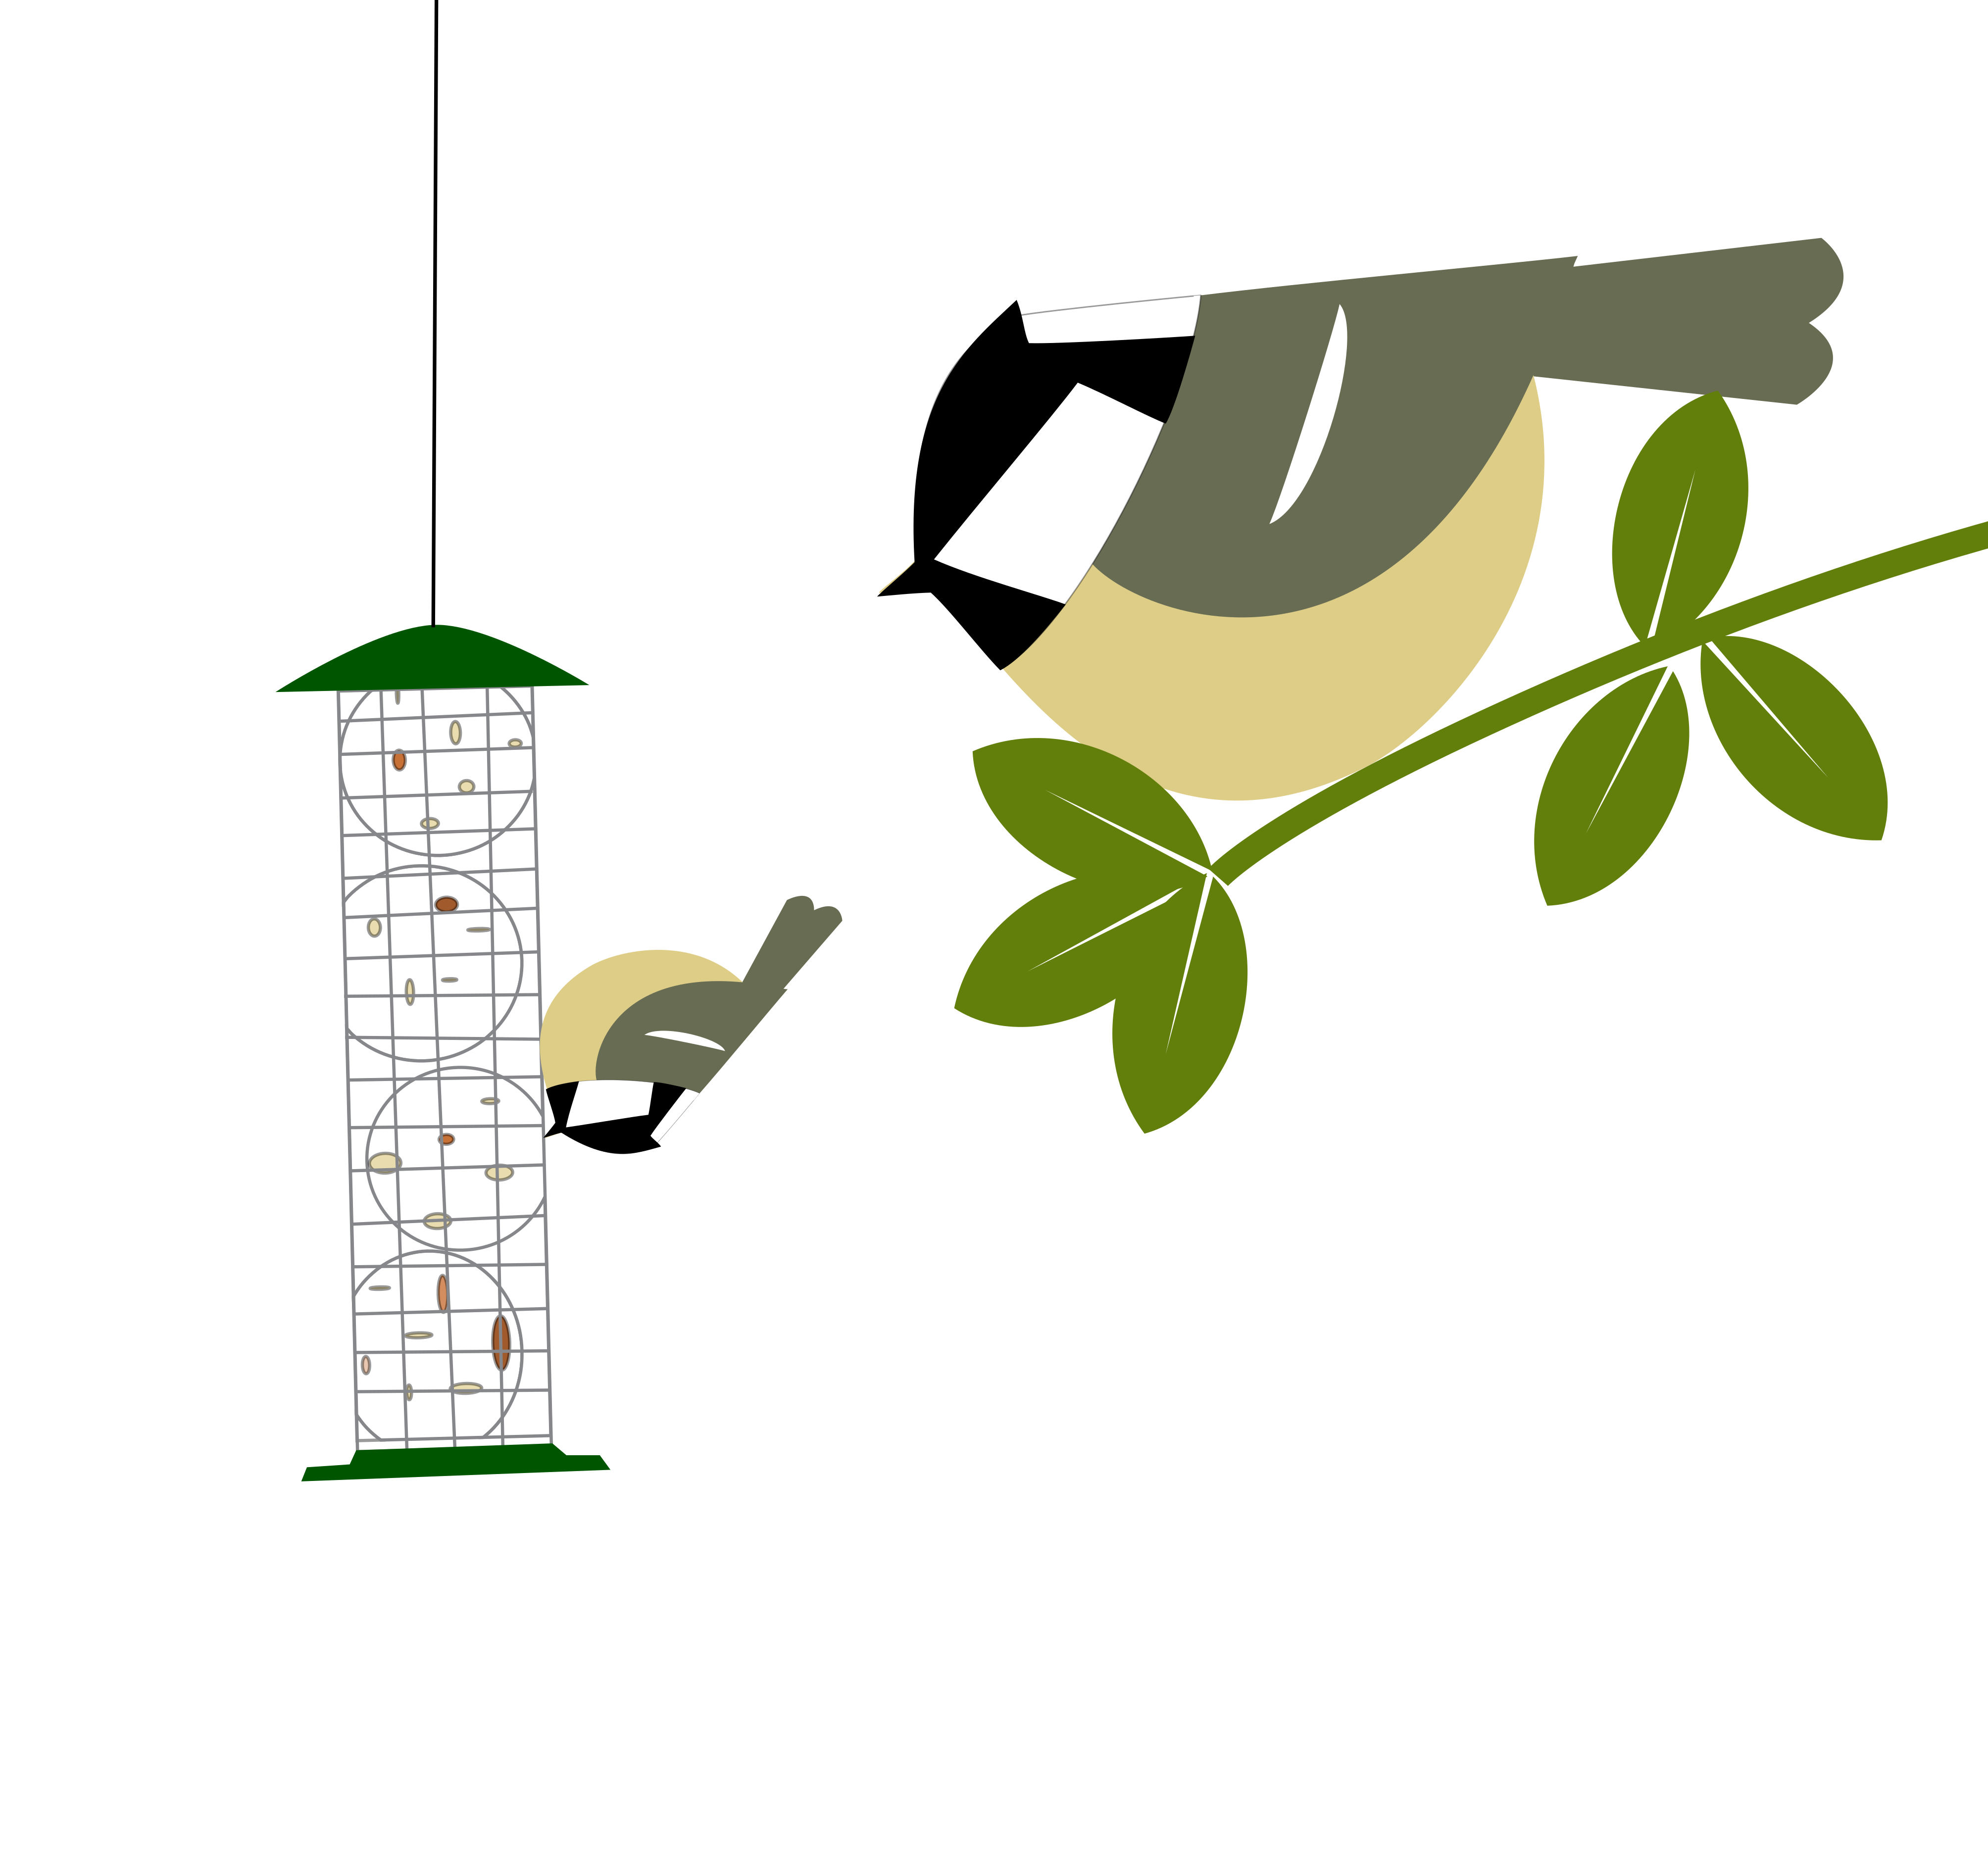 a coal tit waits its turn on a twig while another coal tit is at the feeder. Simply drawn with flat bold colours on a white background